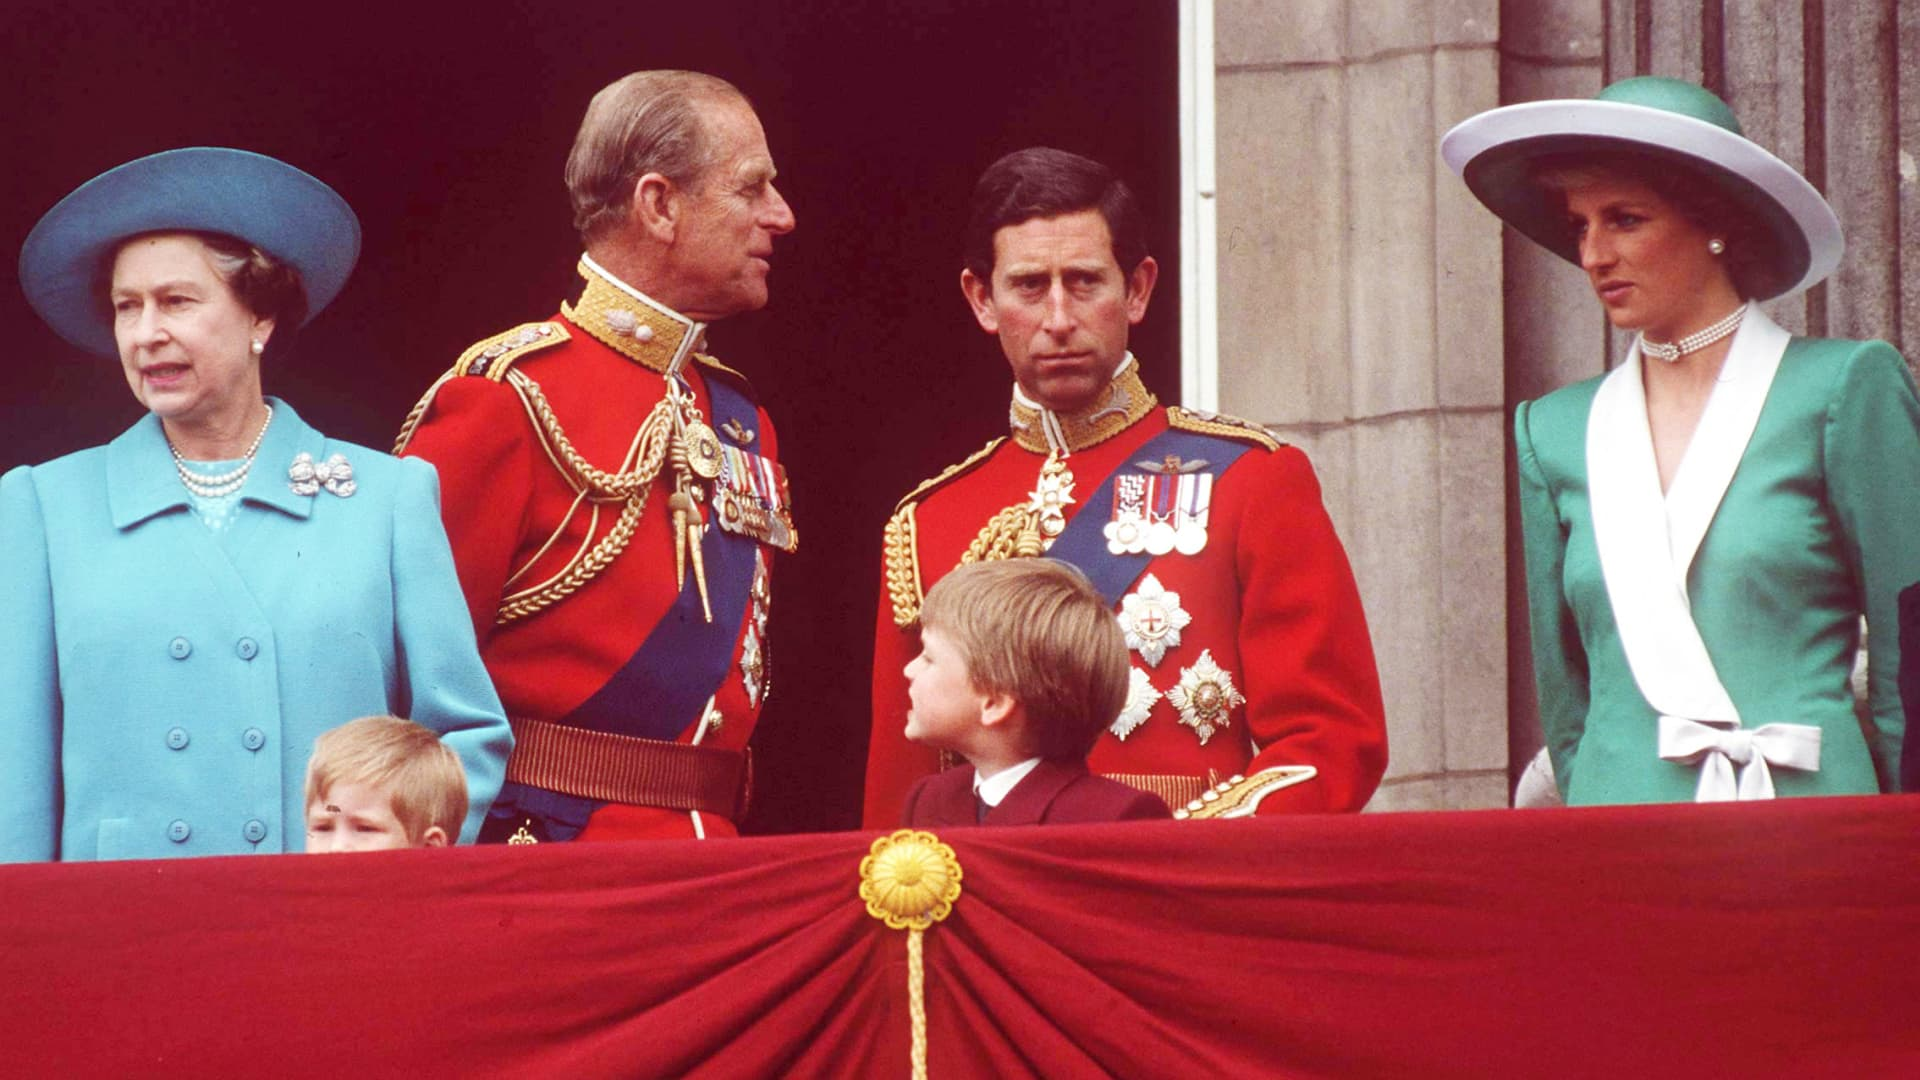 Queen Elizabeth, Prince Philip, Prince Charles and Princess Diana at Buckingham Palace for Trooping the Colour. In front are Prince Harry and Prince William.